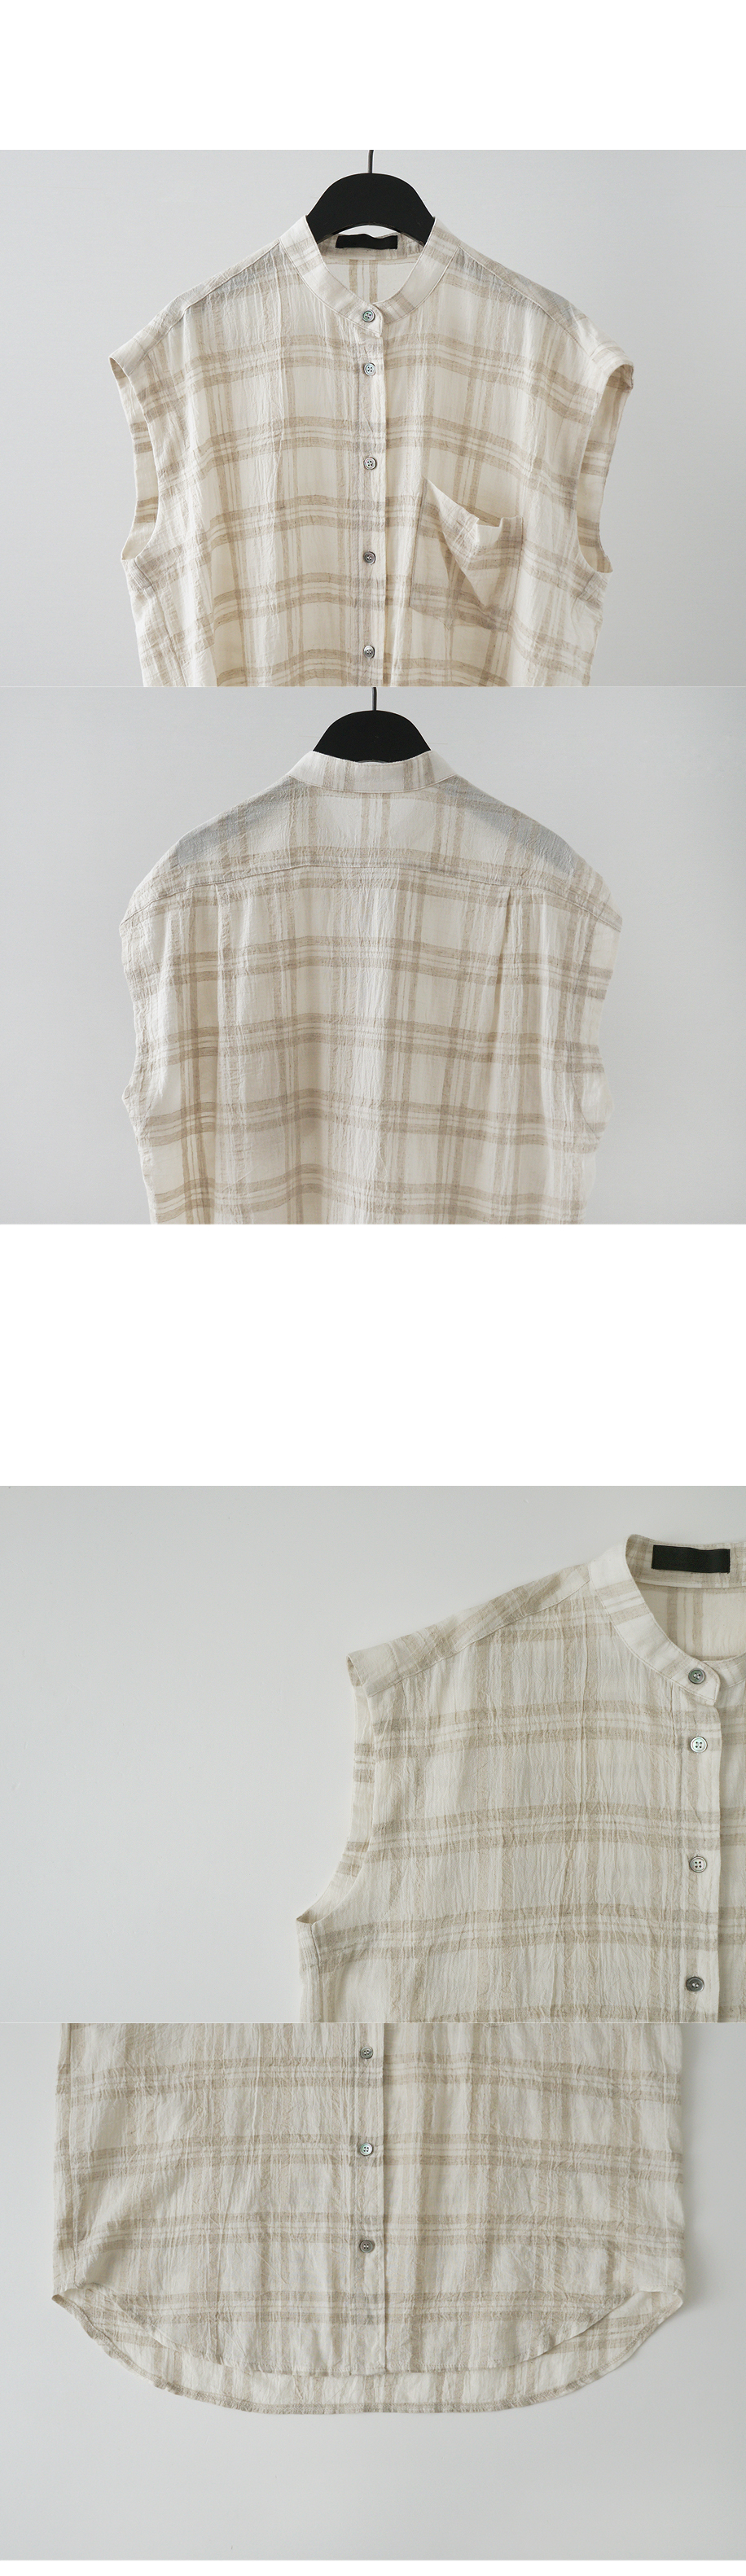 plaid non sleeve shirts